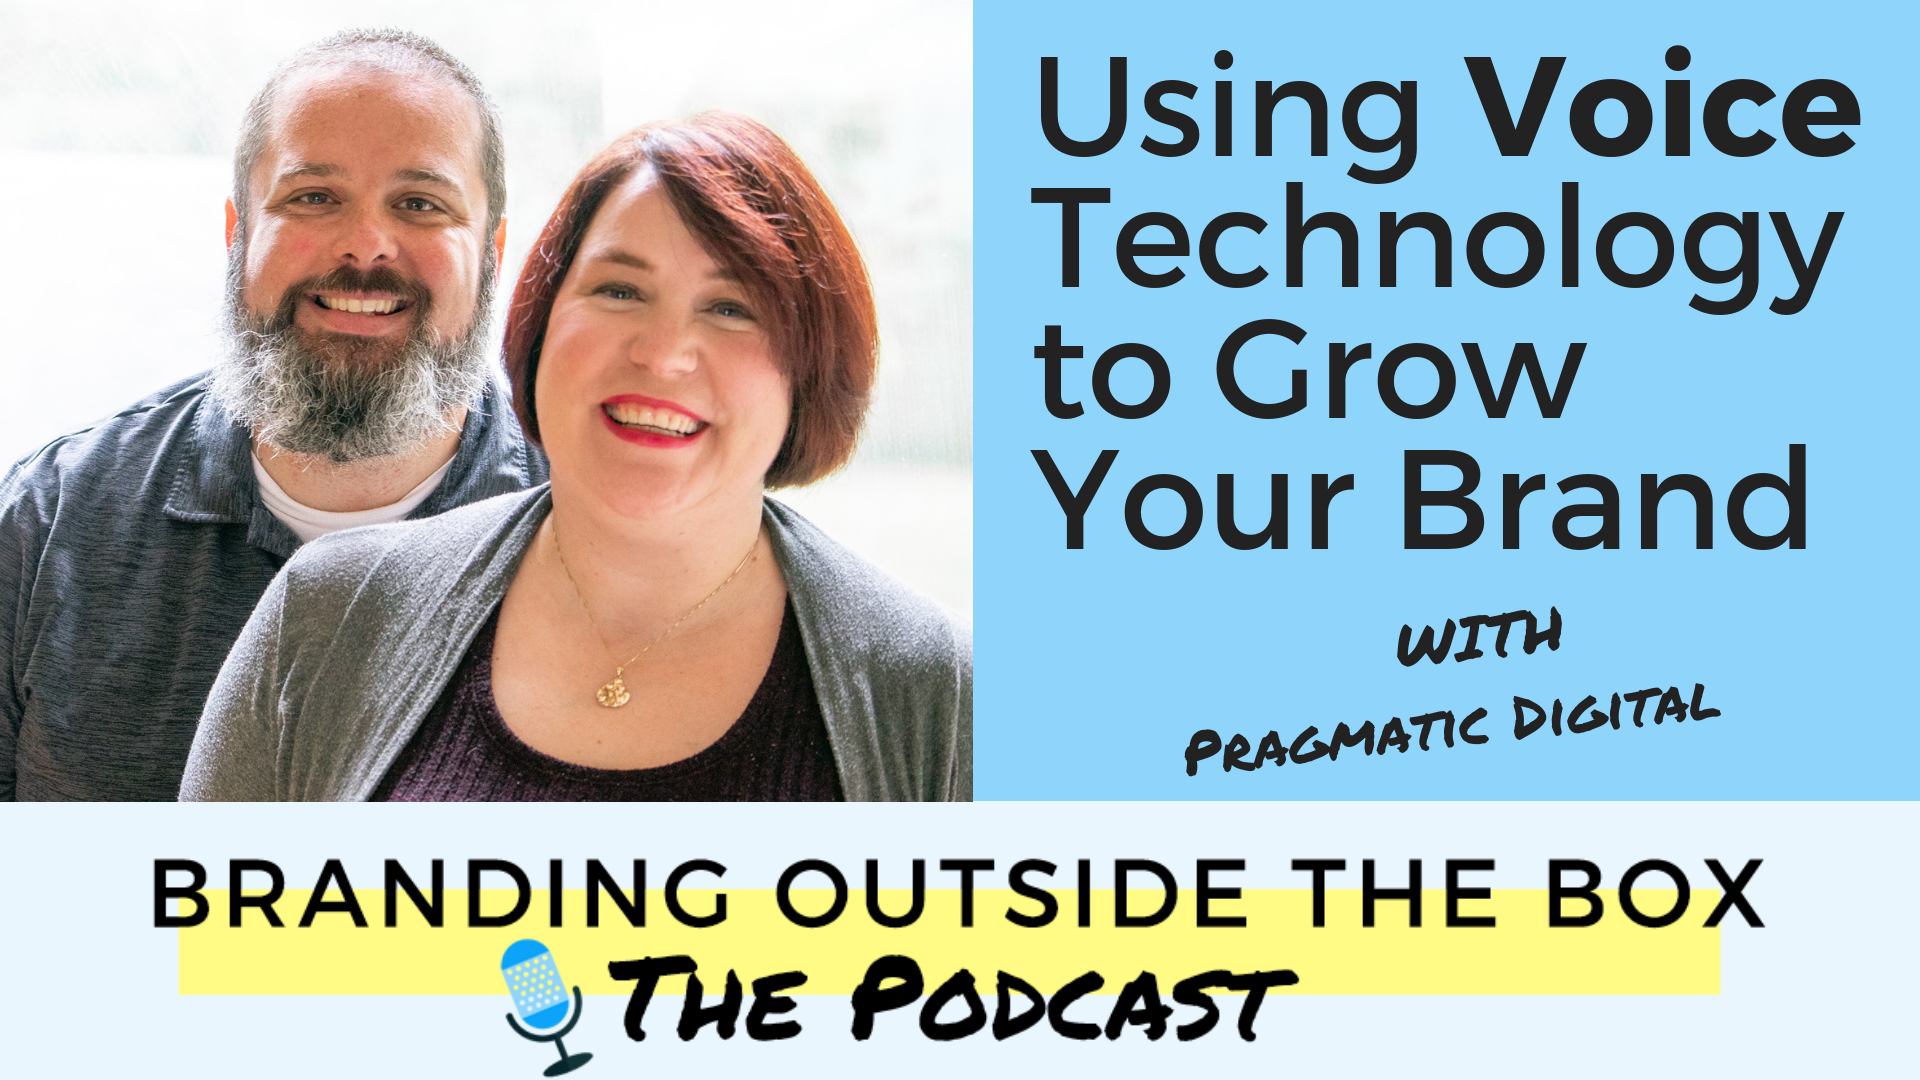 Using Voice Technology to Grow Your Brand